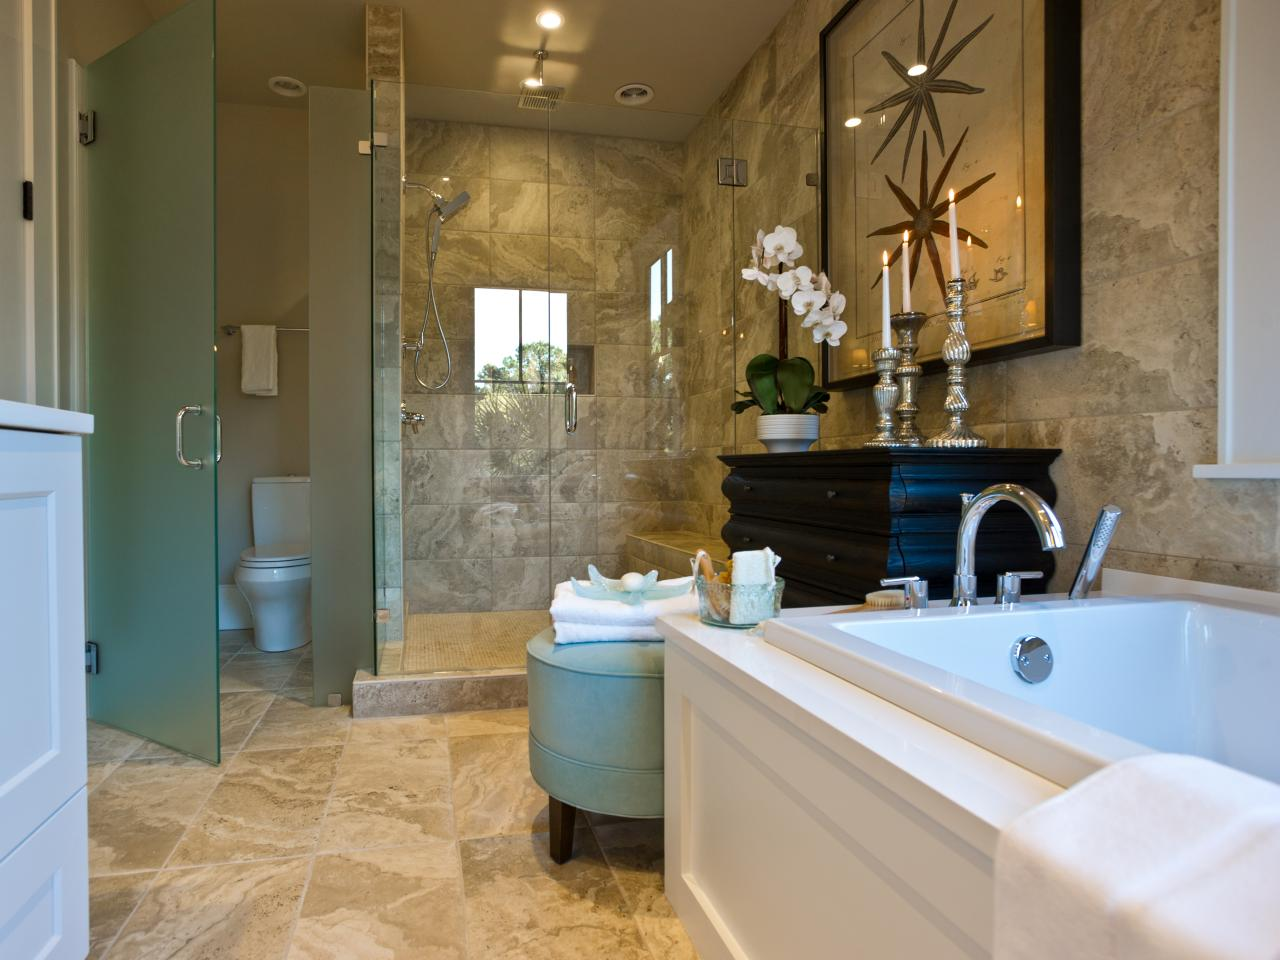 Hgtv dream home 2013 master bathroom pictures and video for Bathroom designs hgtv